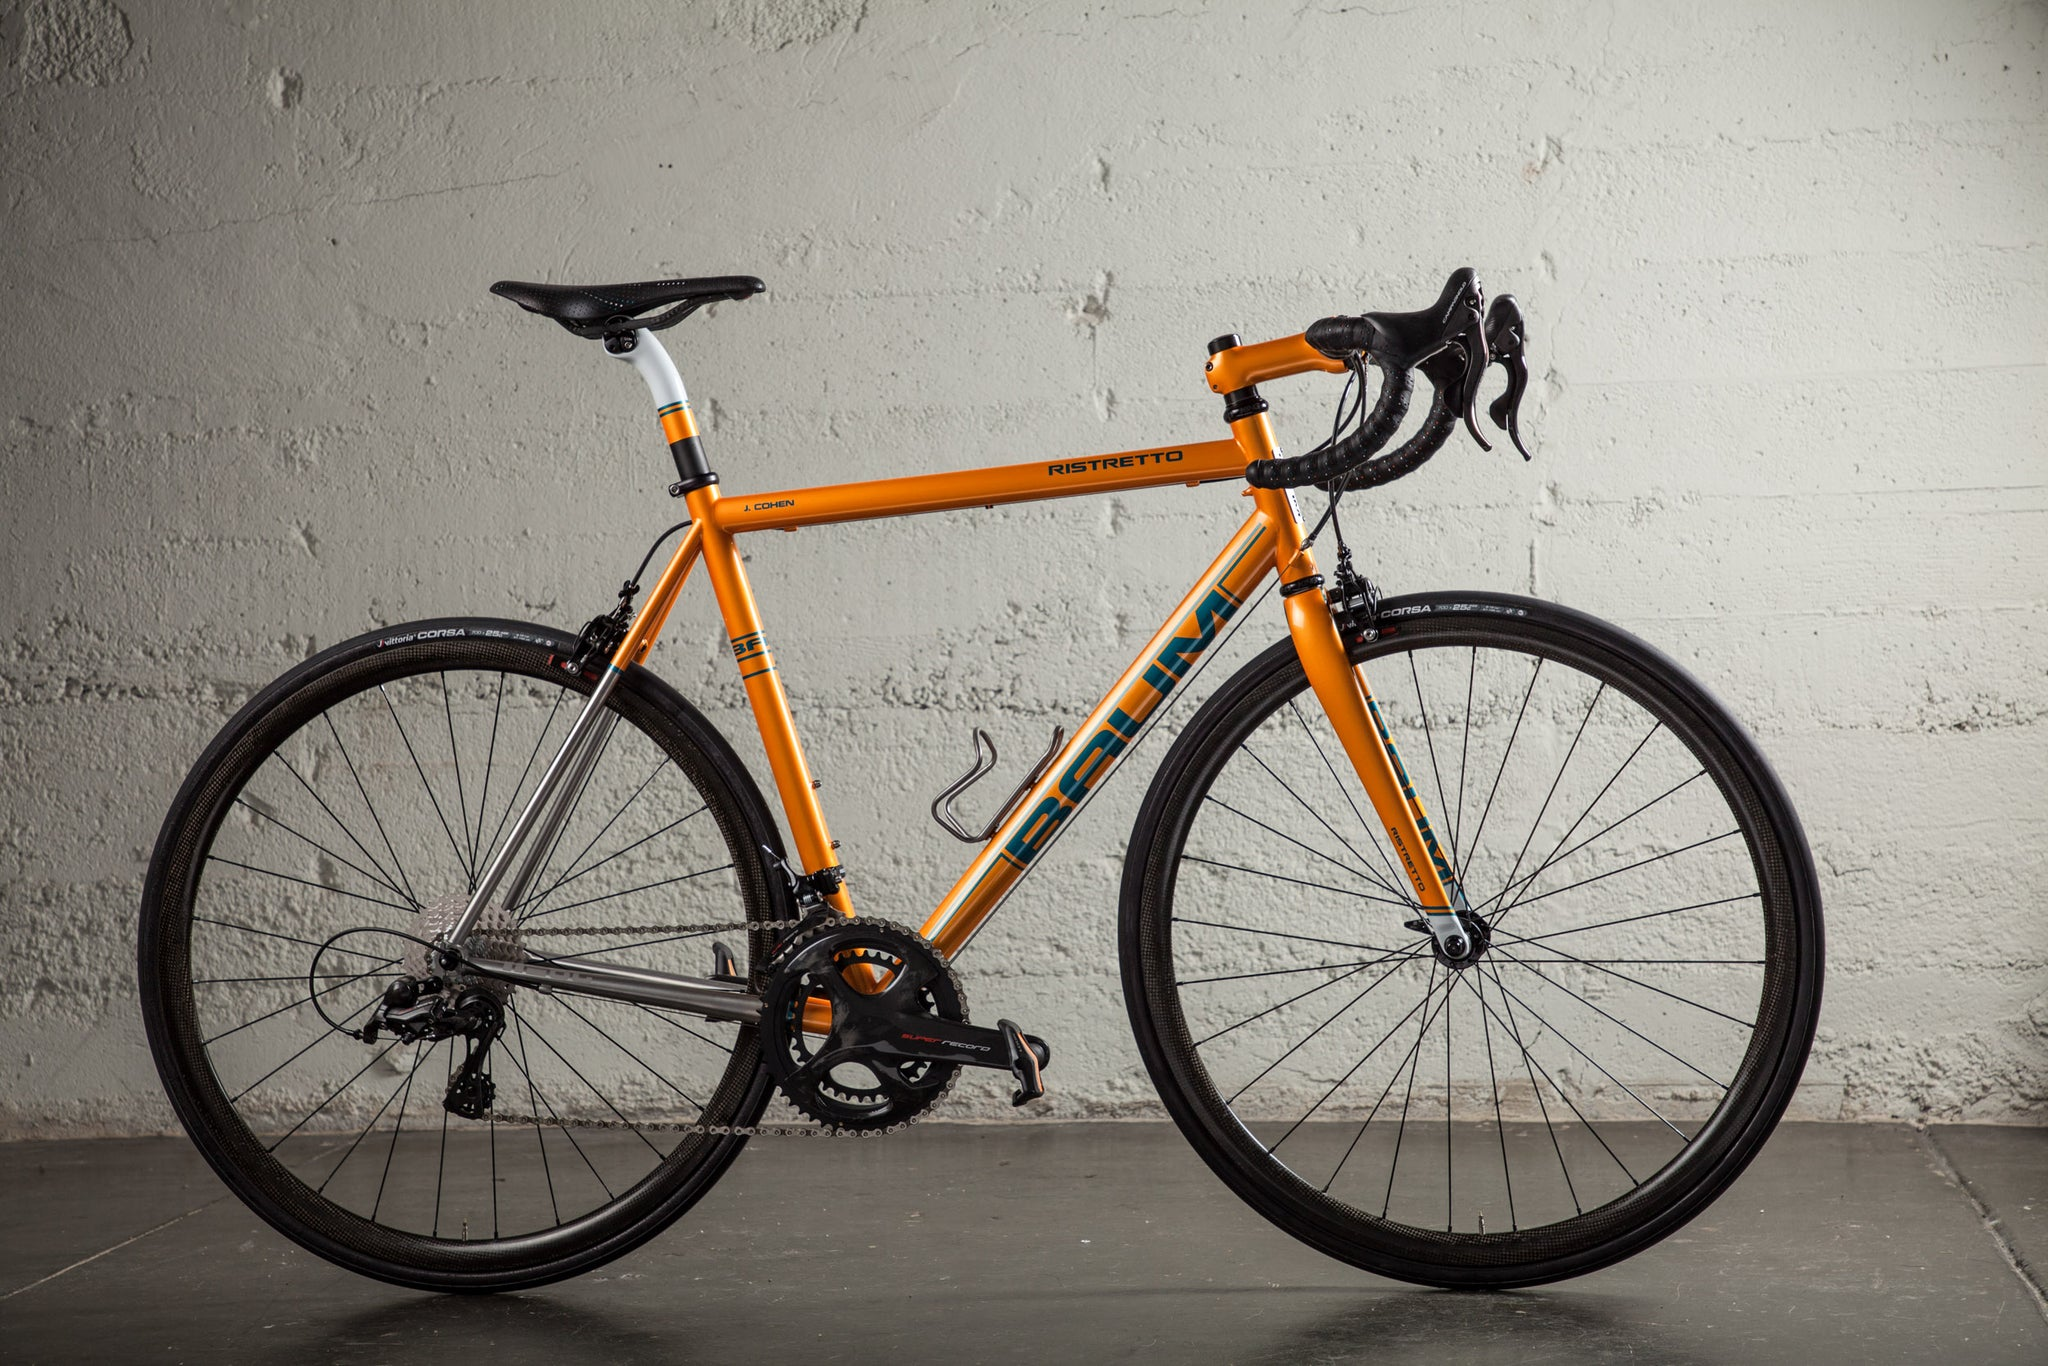 baum ristretto orange super record JC bike profile